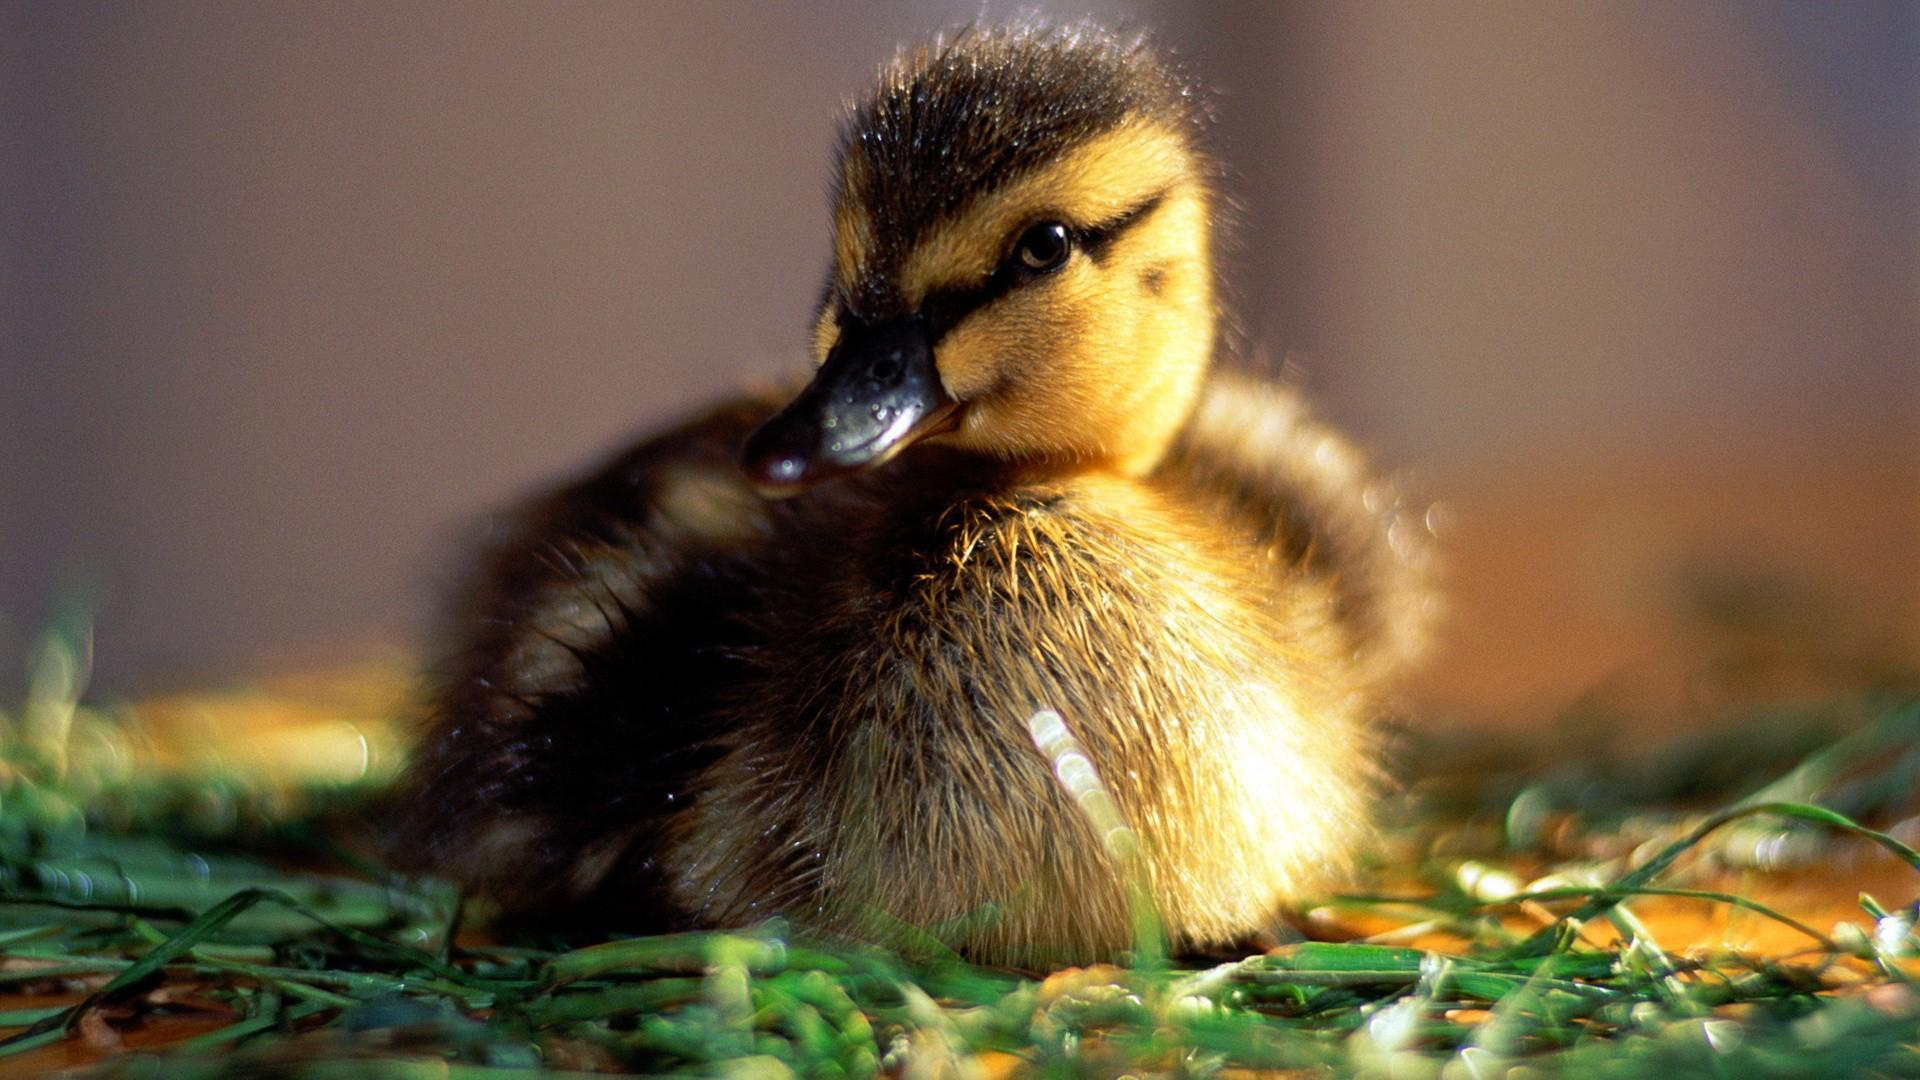 Baby Animal Backgrounds - Wallpaper Cave